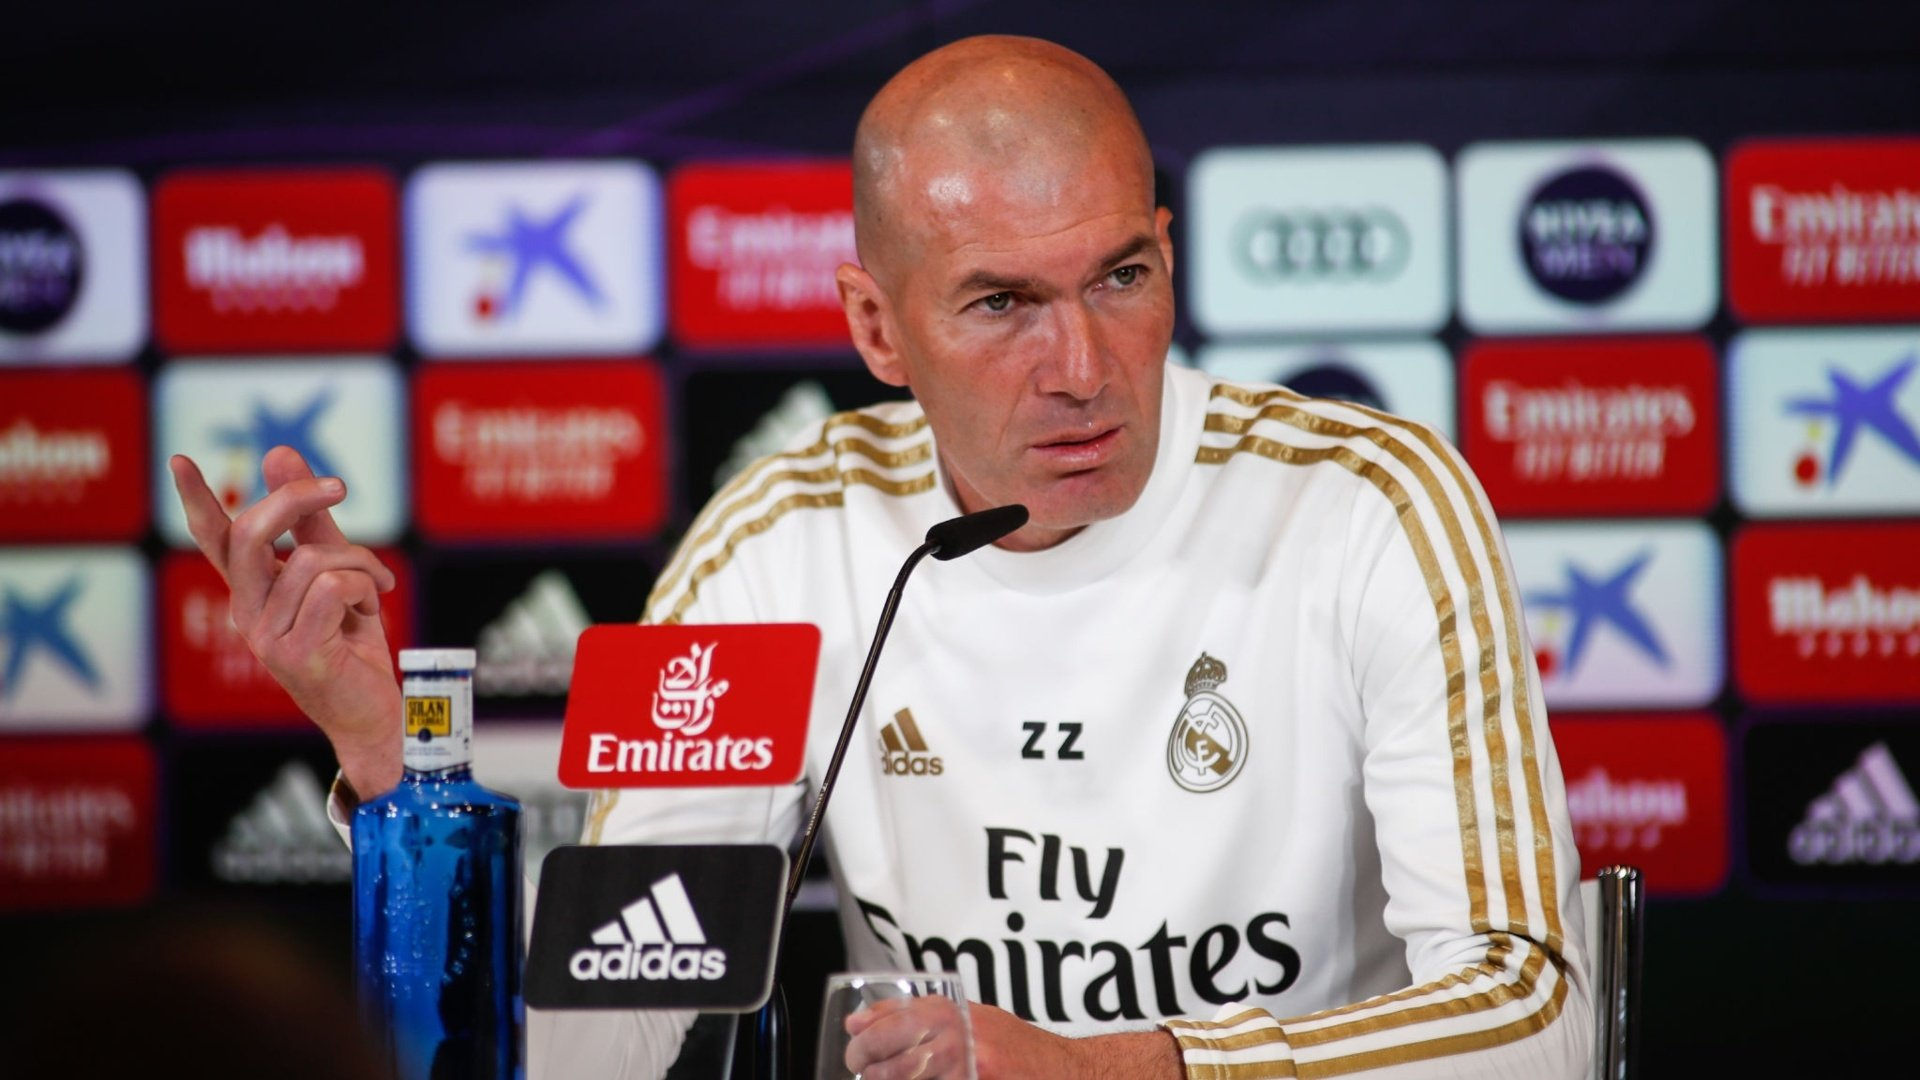 Zidane on El Clásico, lack of goals, Kroos & more